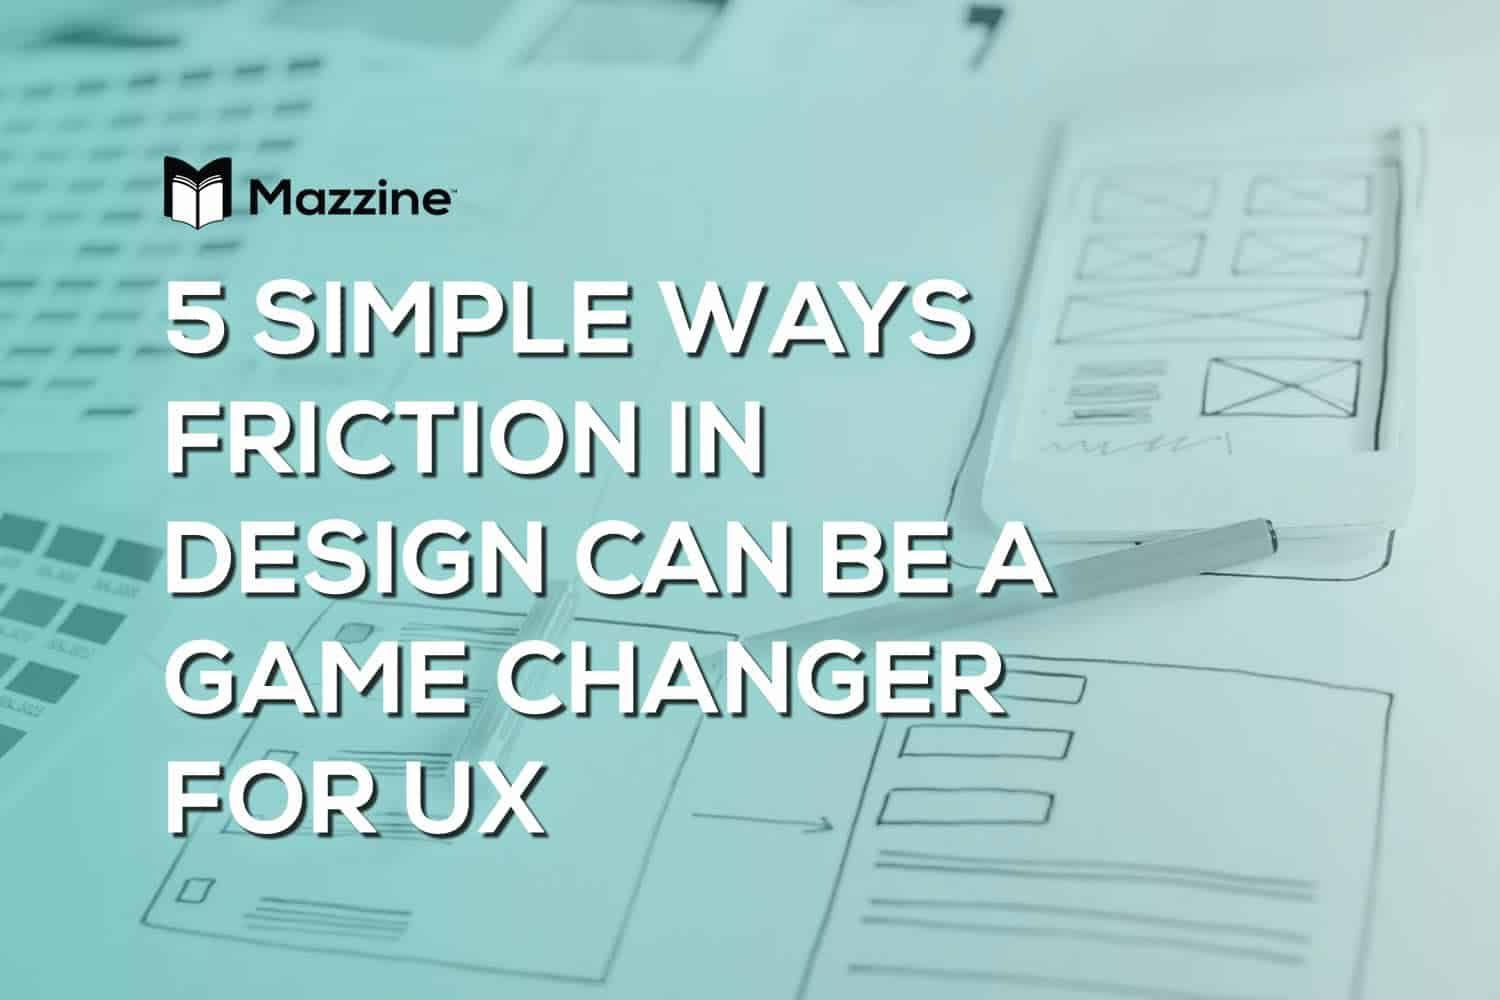 5 Simple Ways Friction in Design Can Be A Game-Changer For UX